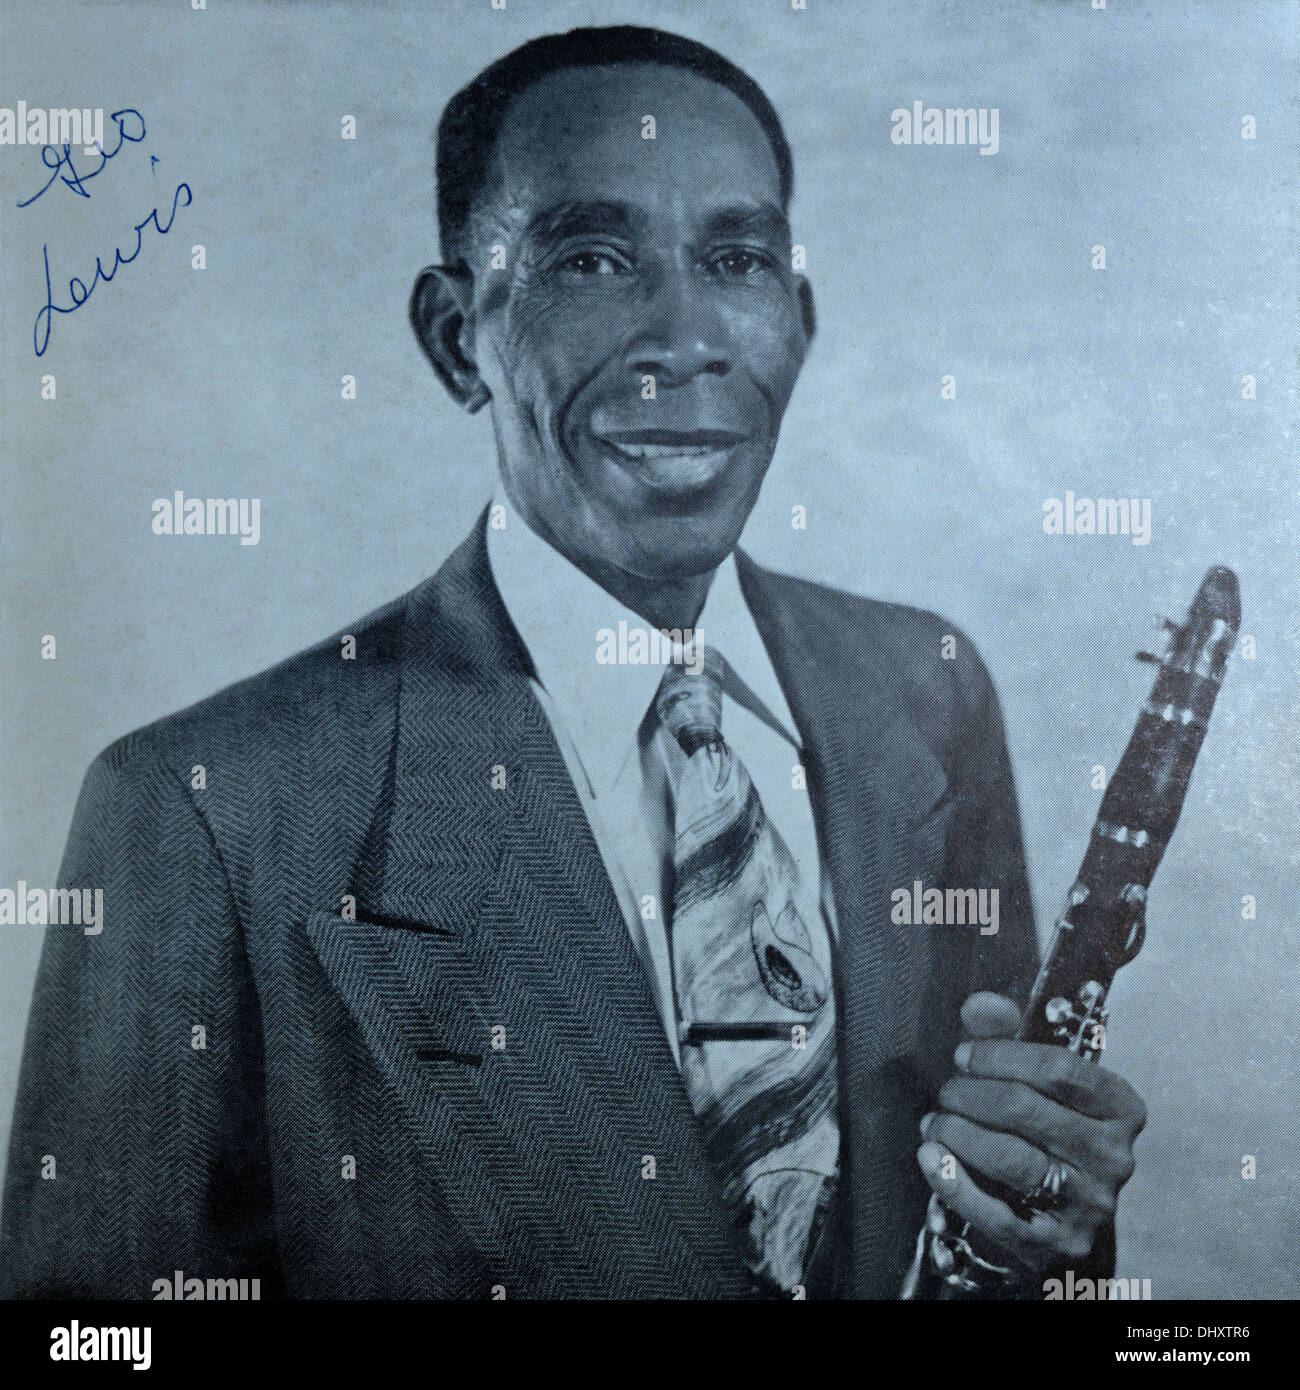 Autographed photograph of George Lewis, New Orleans jazz clarinetist. Stock Photo